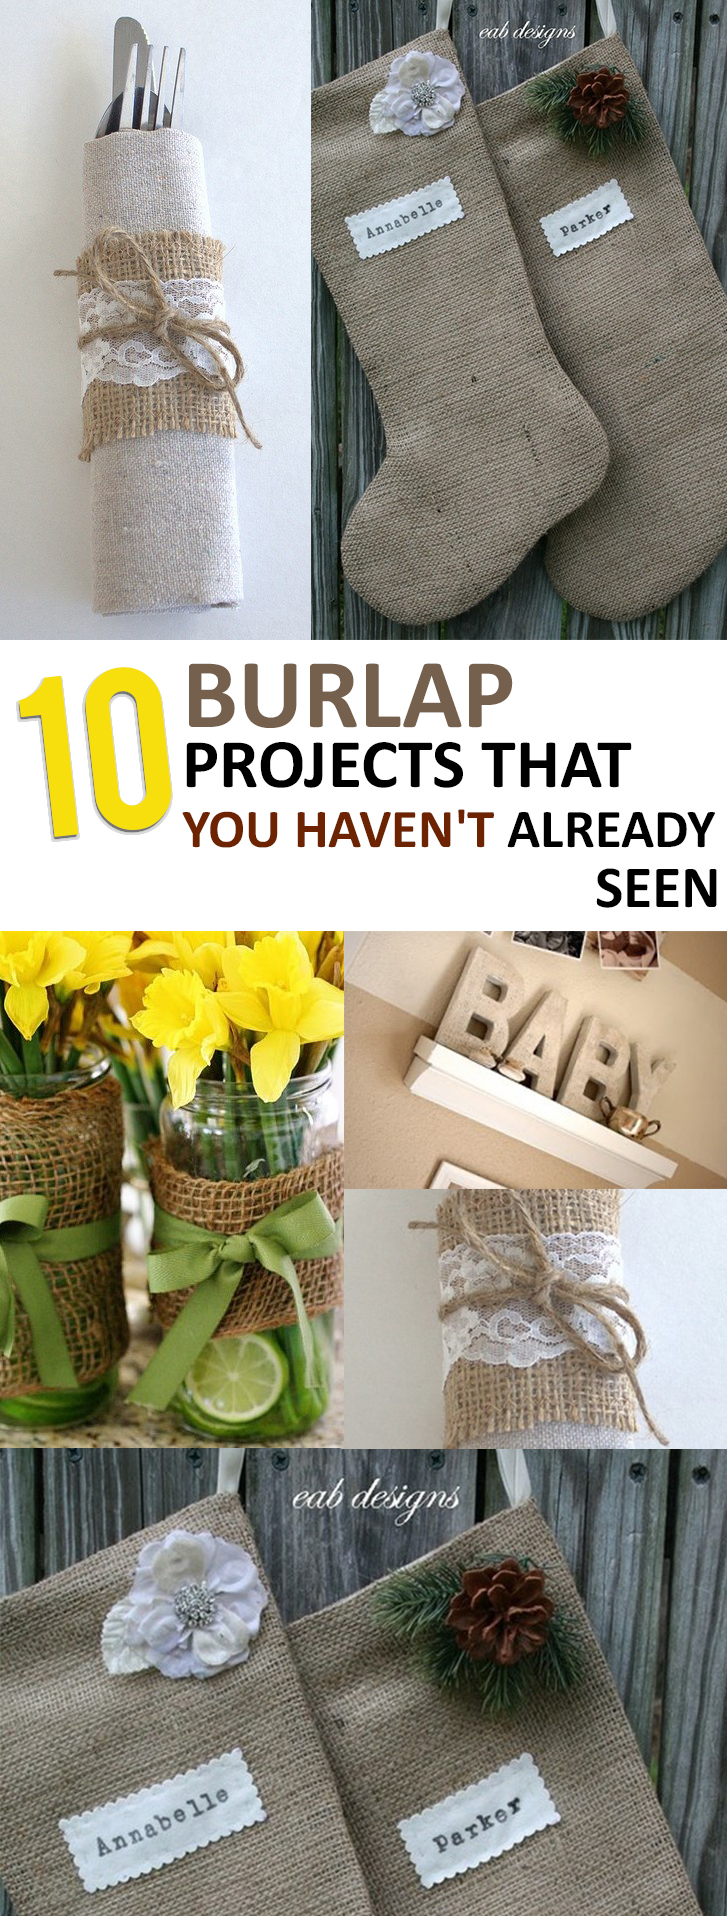 10 Burlap Projects that You Haven't Already Seen